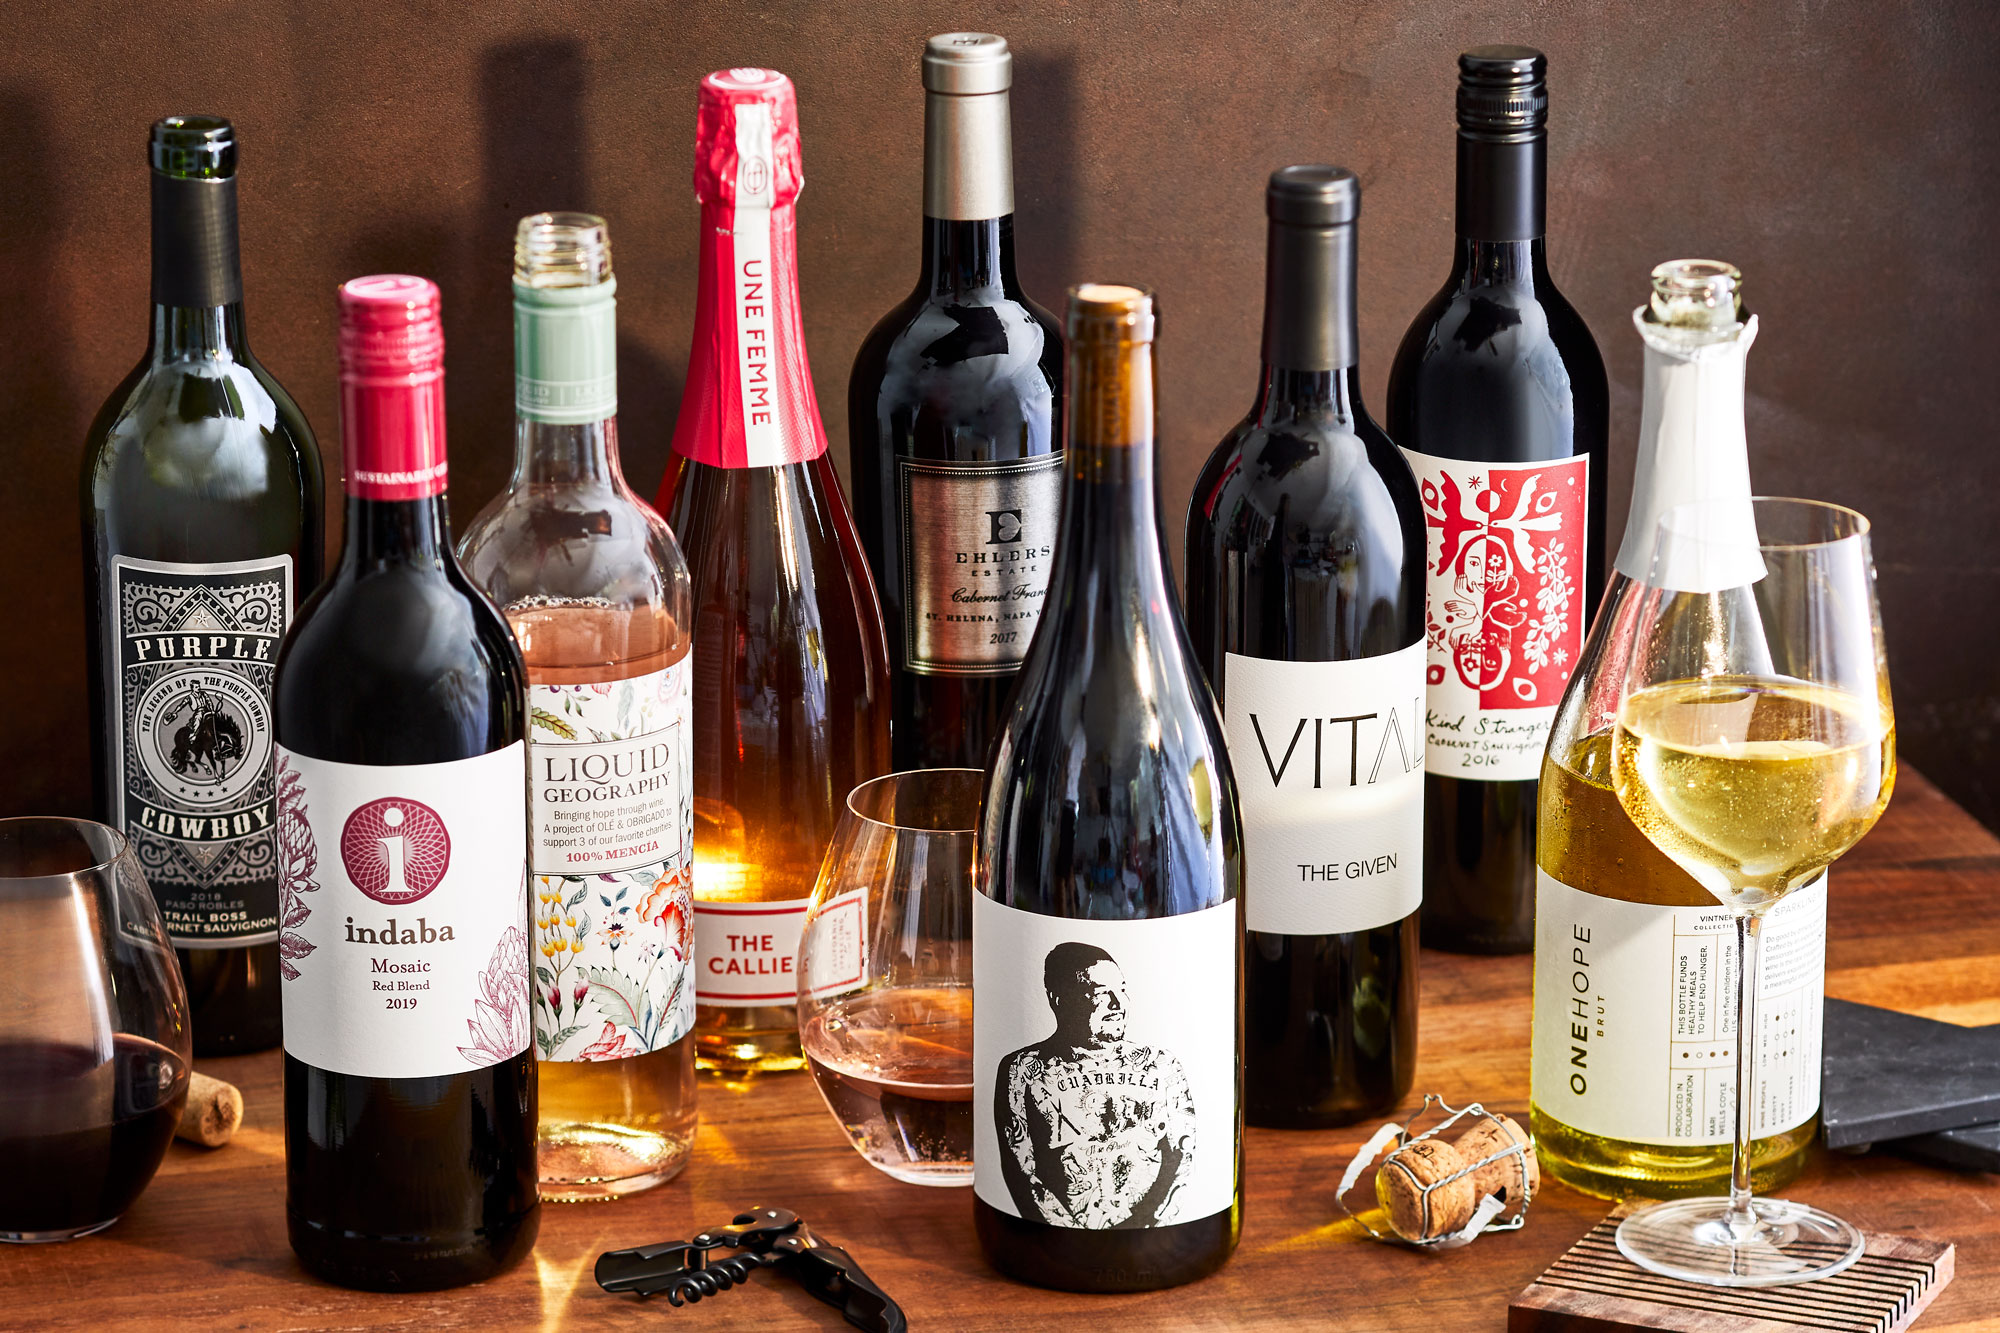 Charity Wines